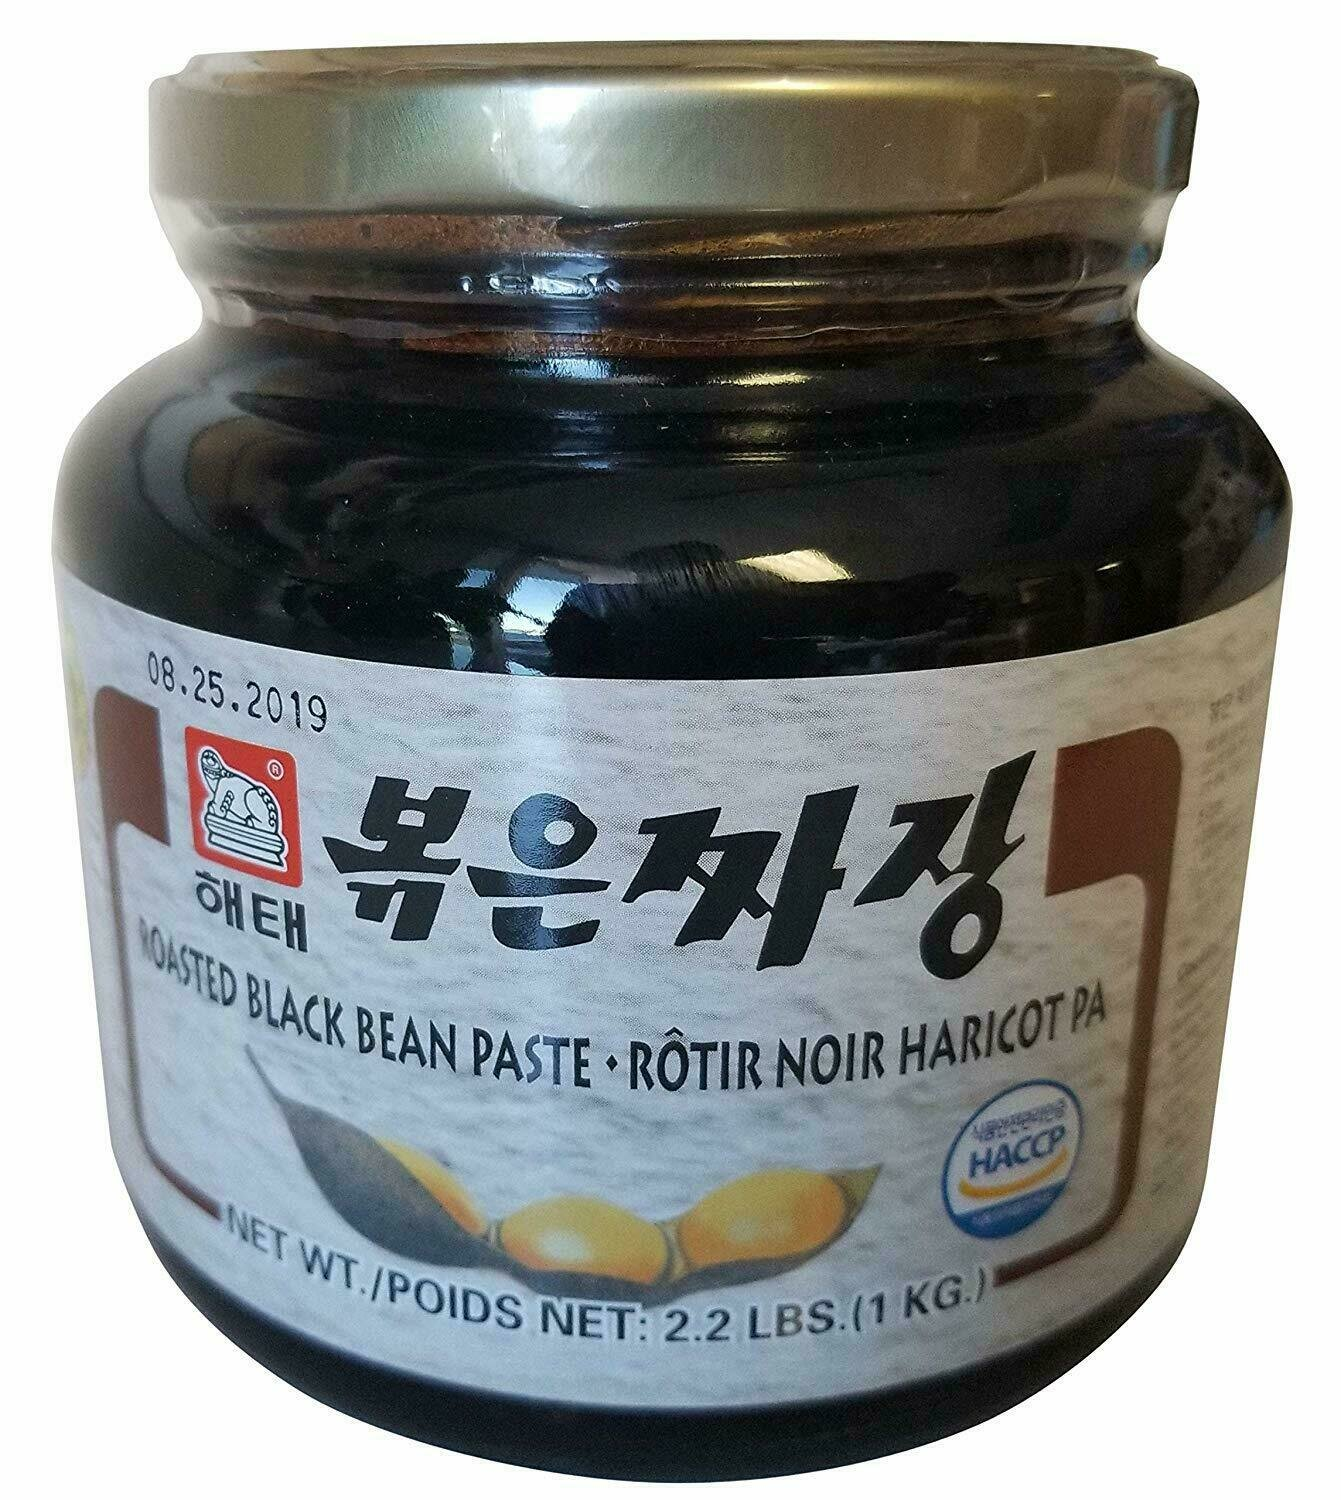 HaeTae Roasted Black Bean Paste (2.2 LBS)